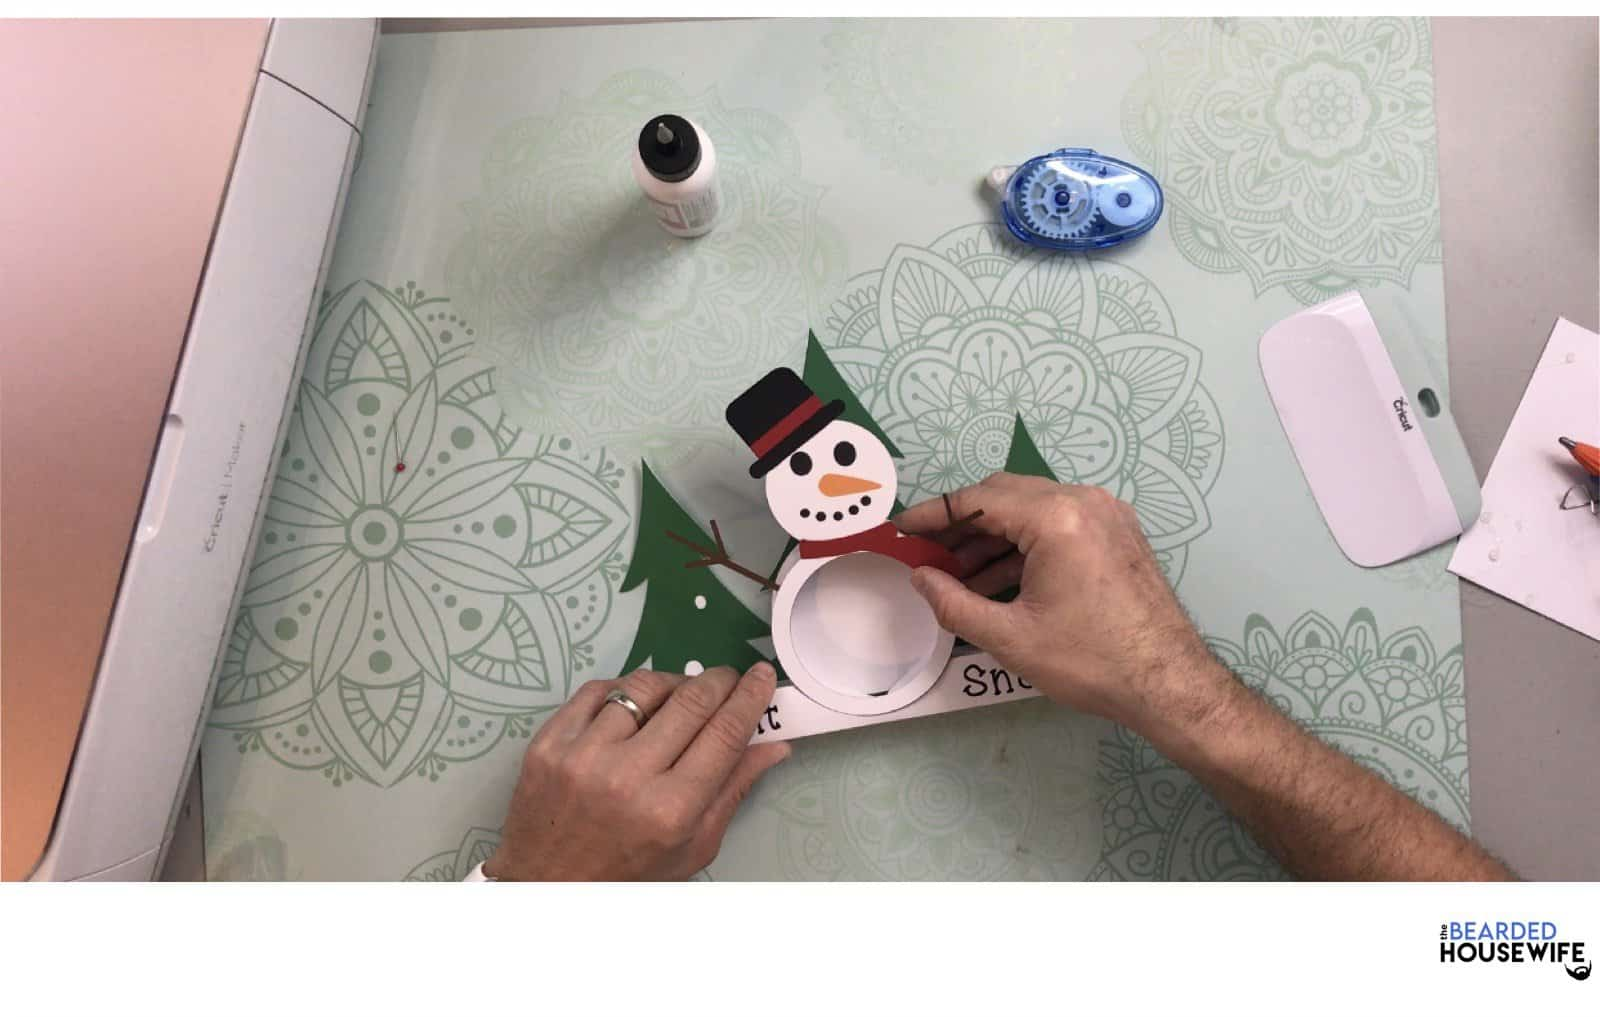 gently press and hold the snowman into the bridge securing him into place